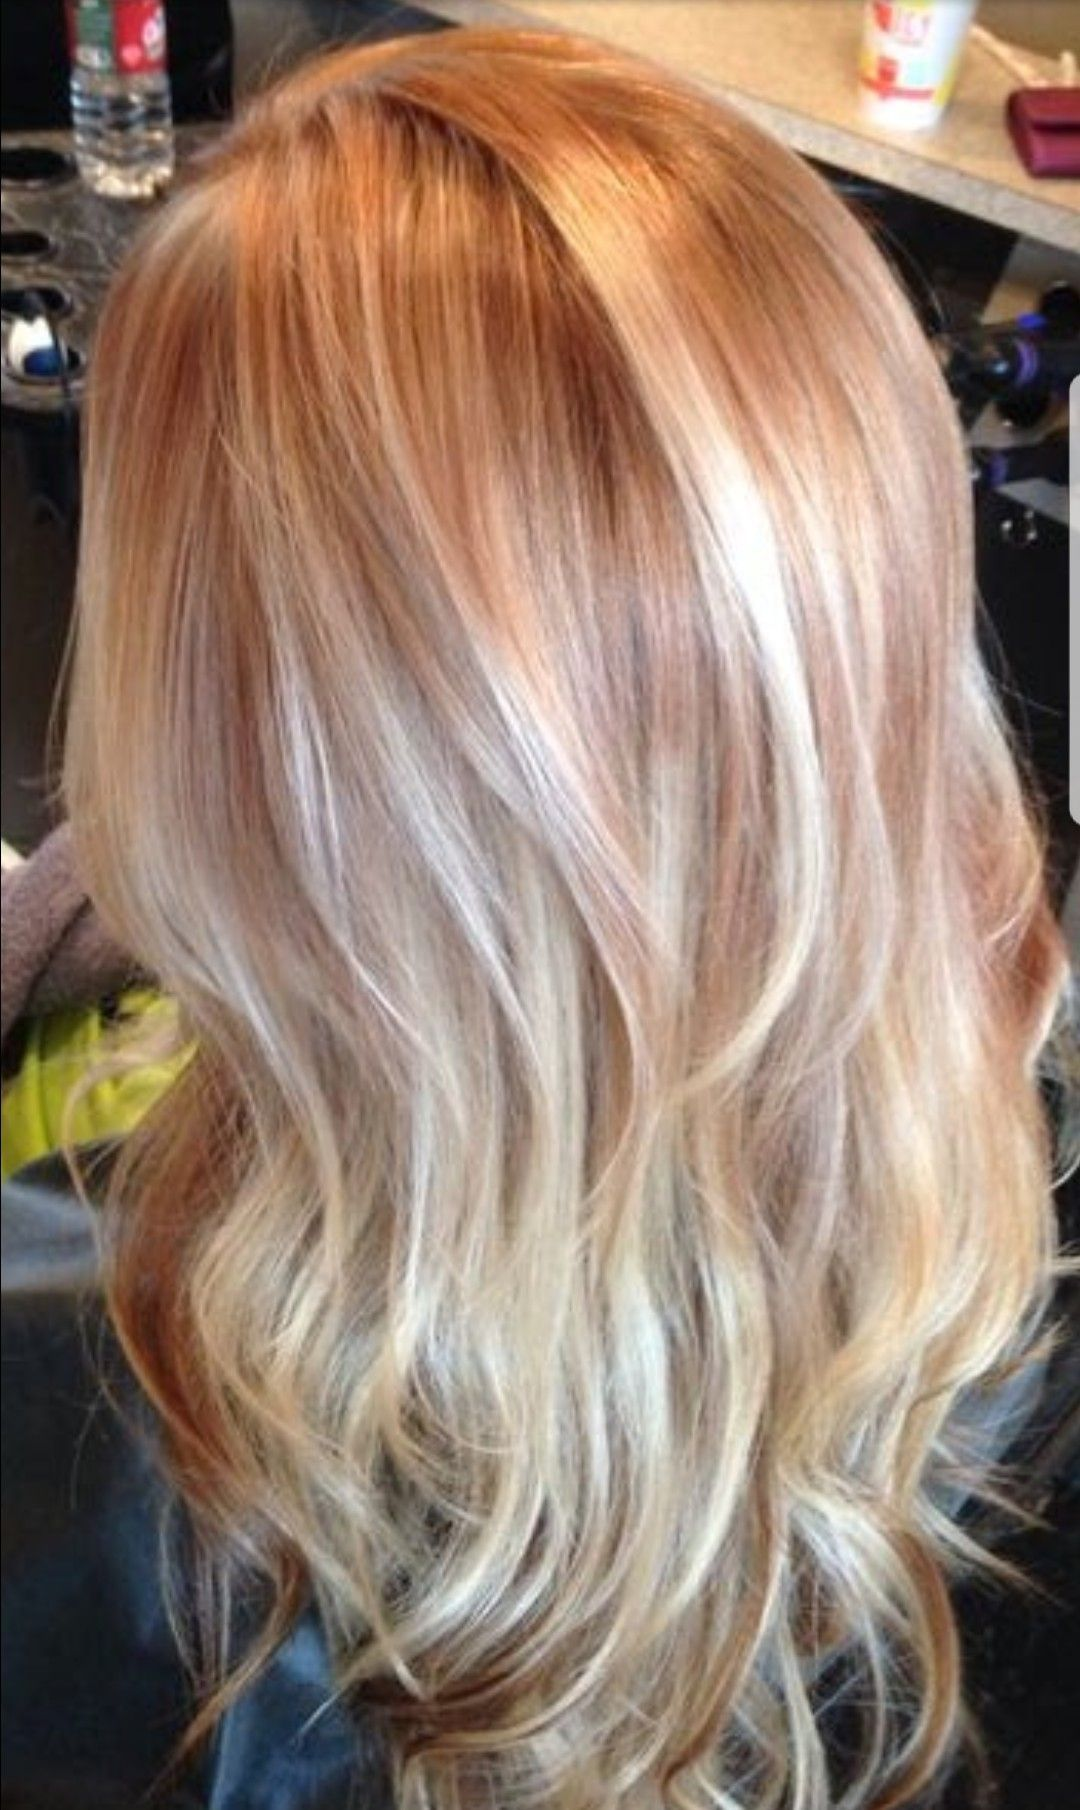 Strawberry Blonde Ginger Hair With Highlights Viral And Trend In 2020 Blonde Hair With Highlights Hair Highlights Hair